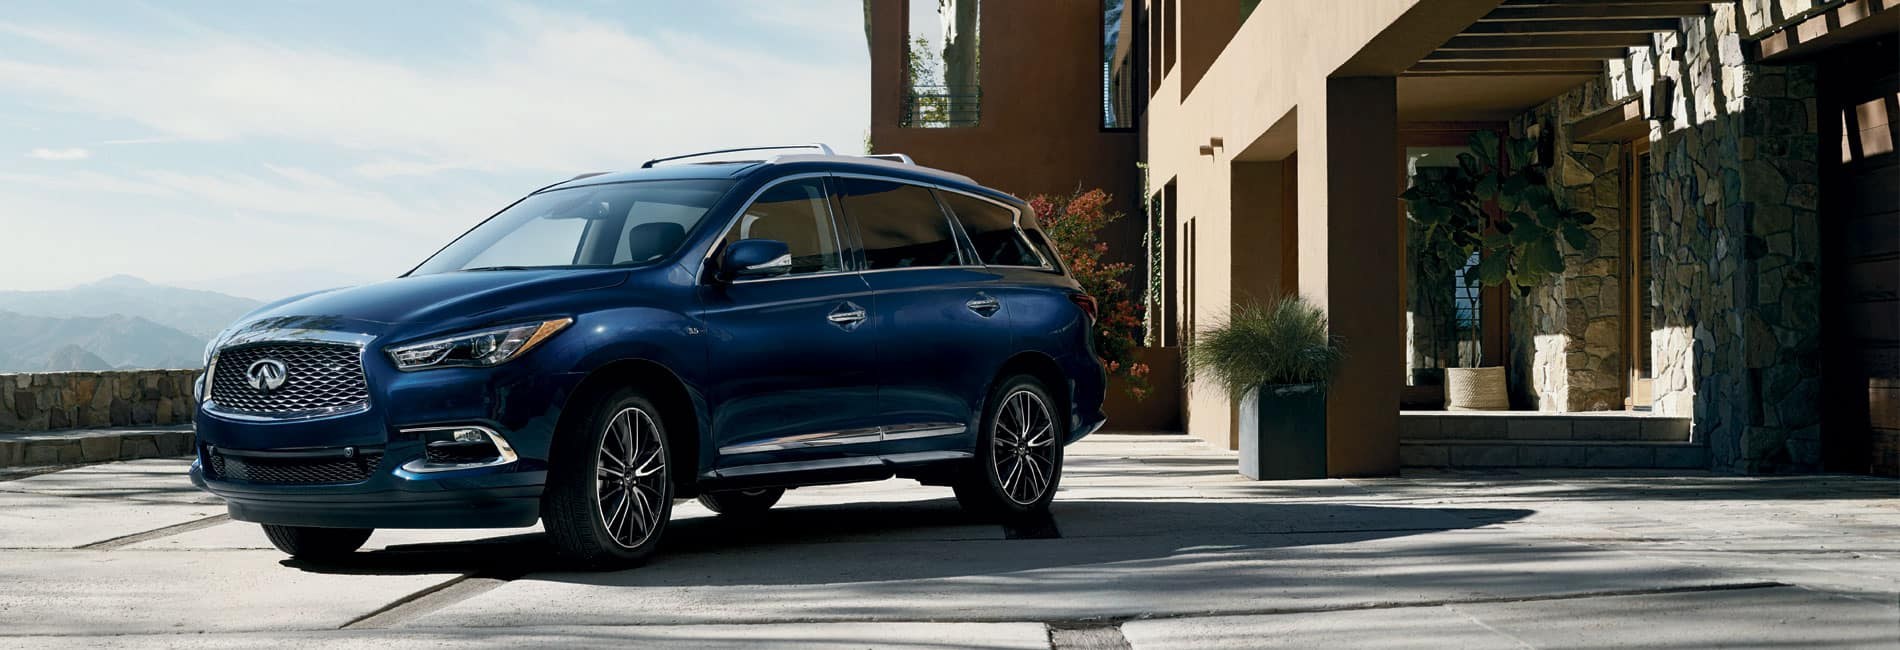 2019 INFINITI QX60 for Sale in Niles, IL